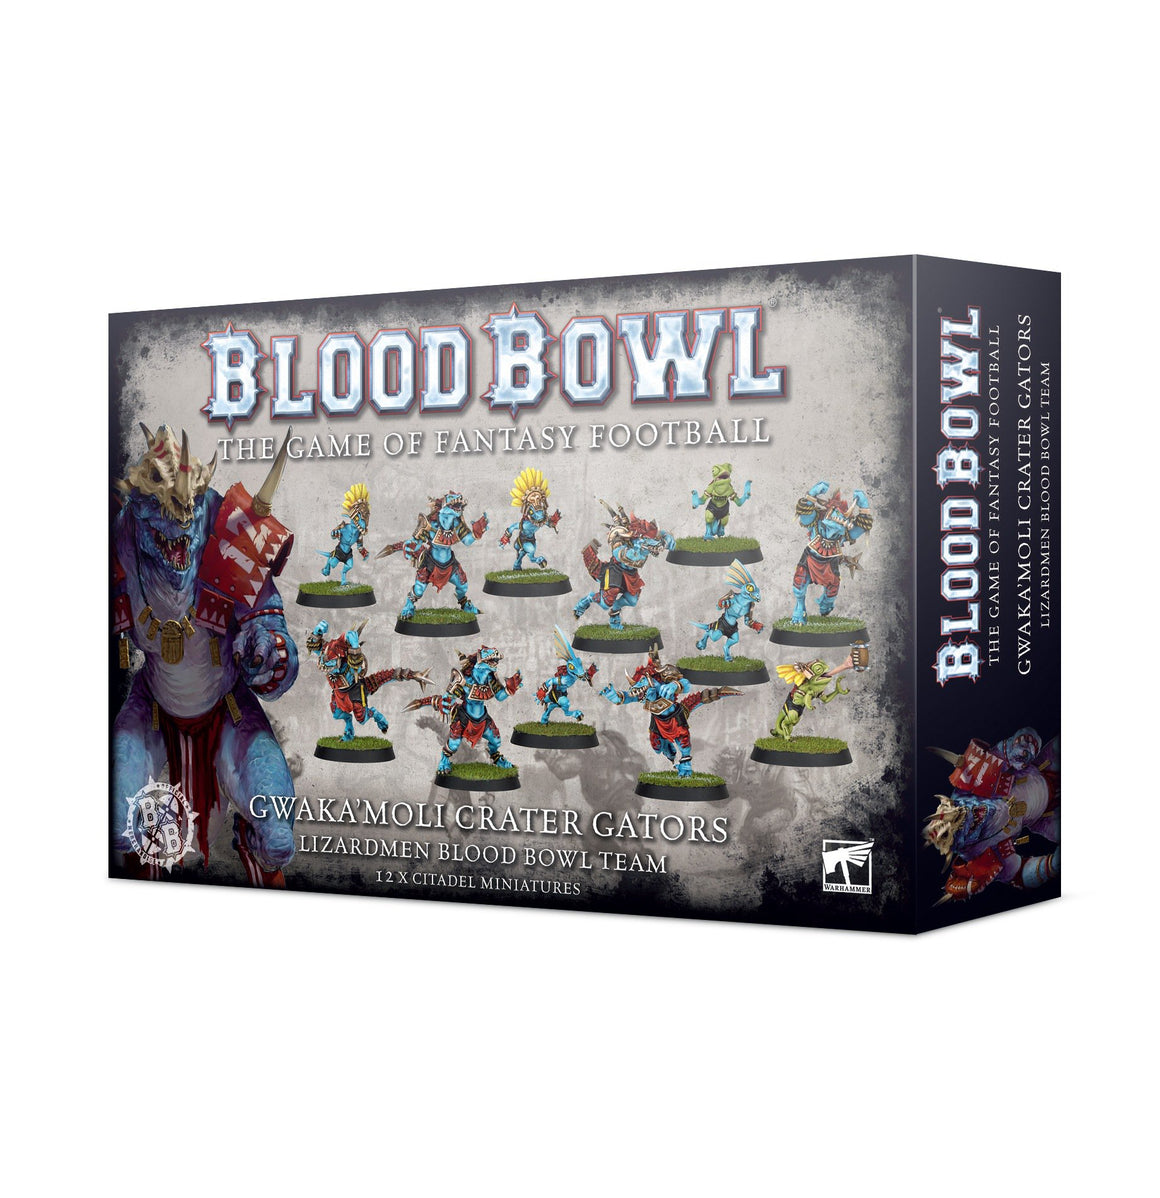 Blood Bowl - Gwaka'moli Crater Gators